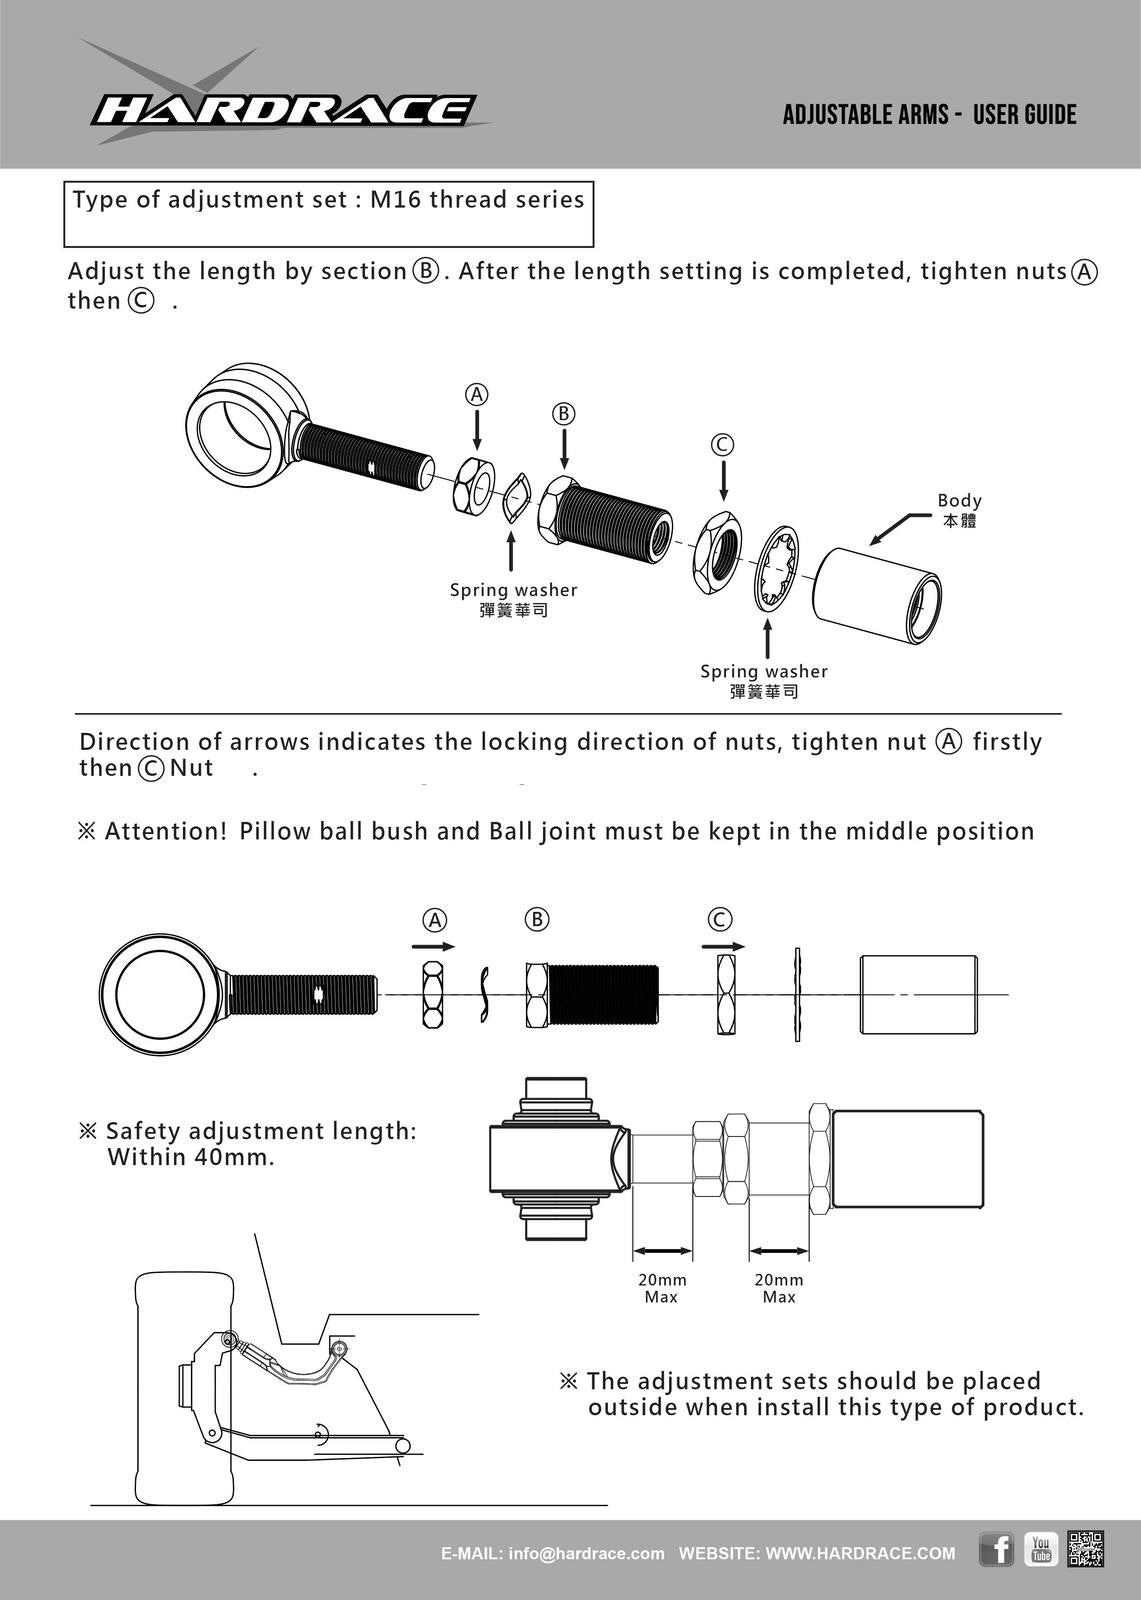 Hardrace 6727 Adjustable Rear Lower Control Arm - Mitsubishi Evo 4, 5, 6, 7, 8 and 9. Installation Instructions